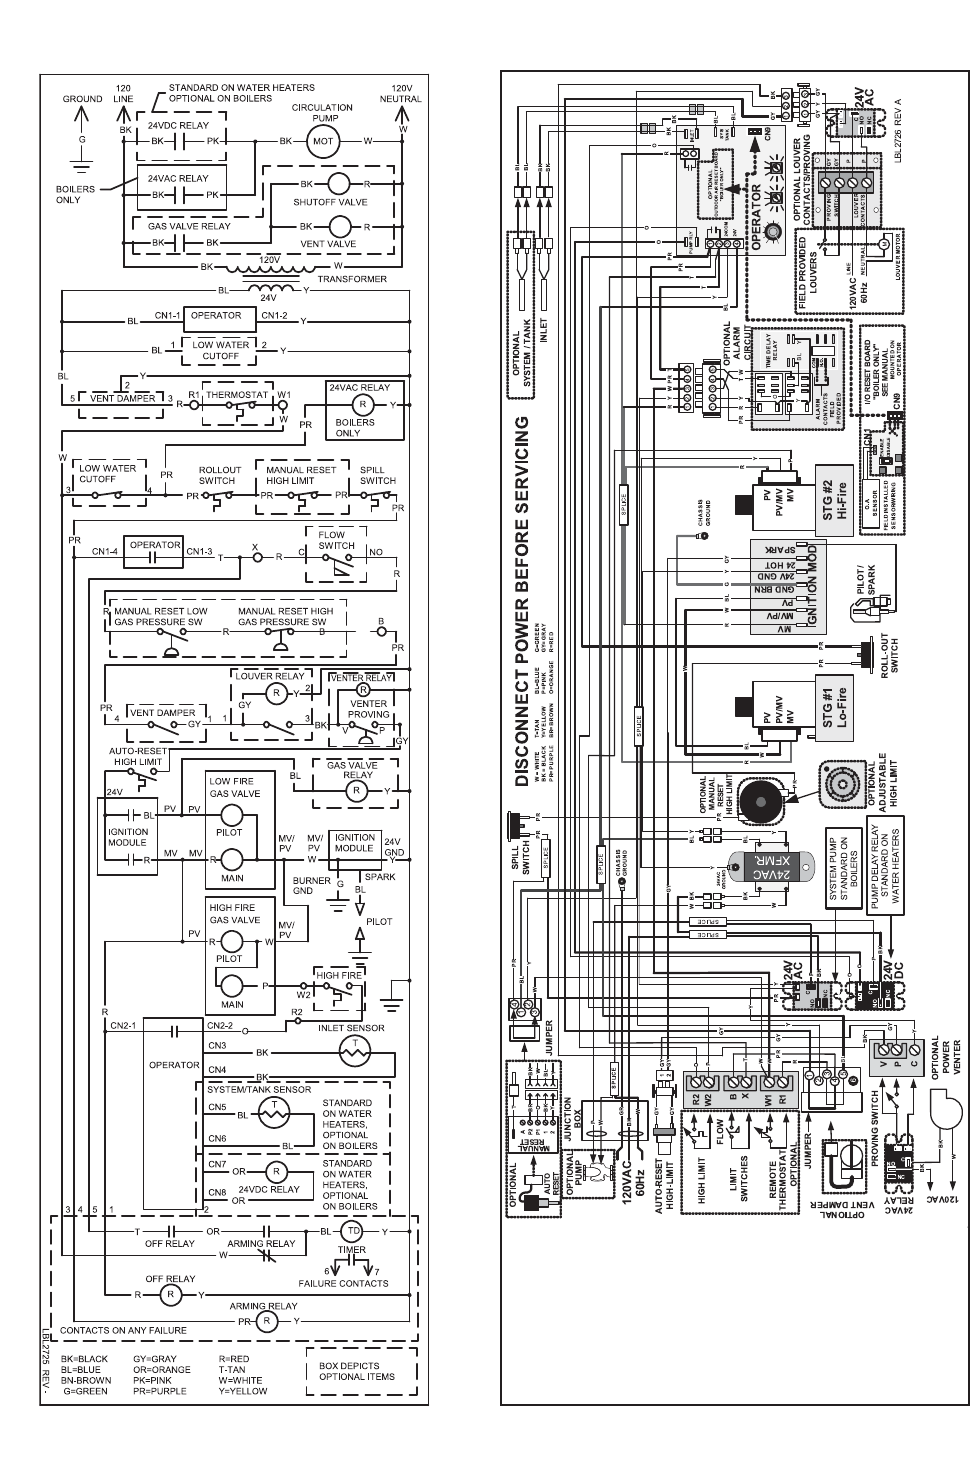 Lochinvar 000 - 500, 000 Btu/hr, 45, CP-5M-4/08, RSB-i&s-05 ... on as is to be diagram, a schematic circuit, ups battery diagram, template diagram, layout diagram, circuit diagram, ic schematic diagram, a schematic drawing, simple schematic diagram,